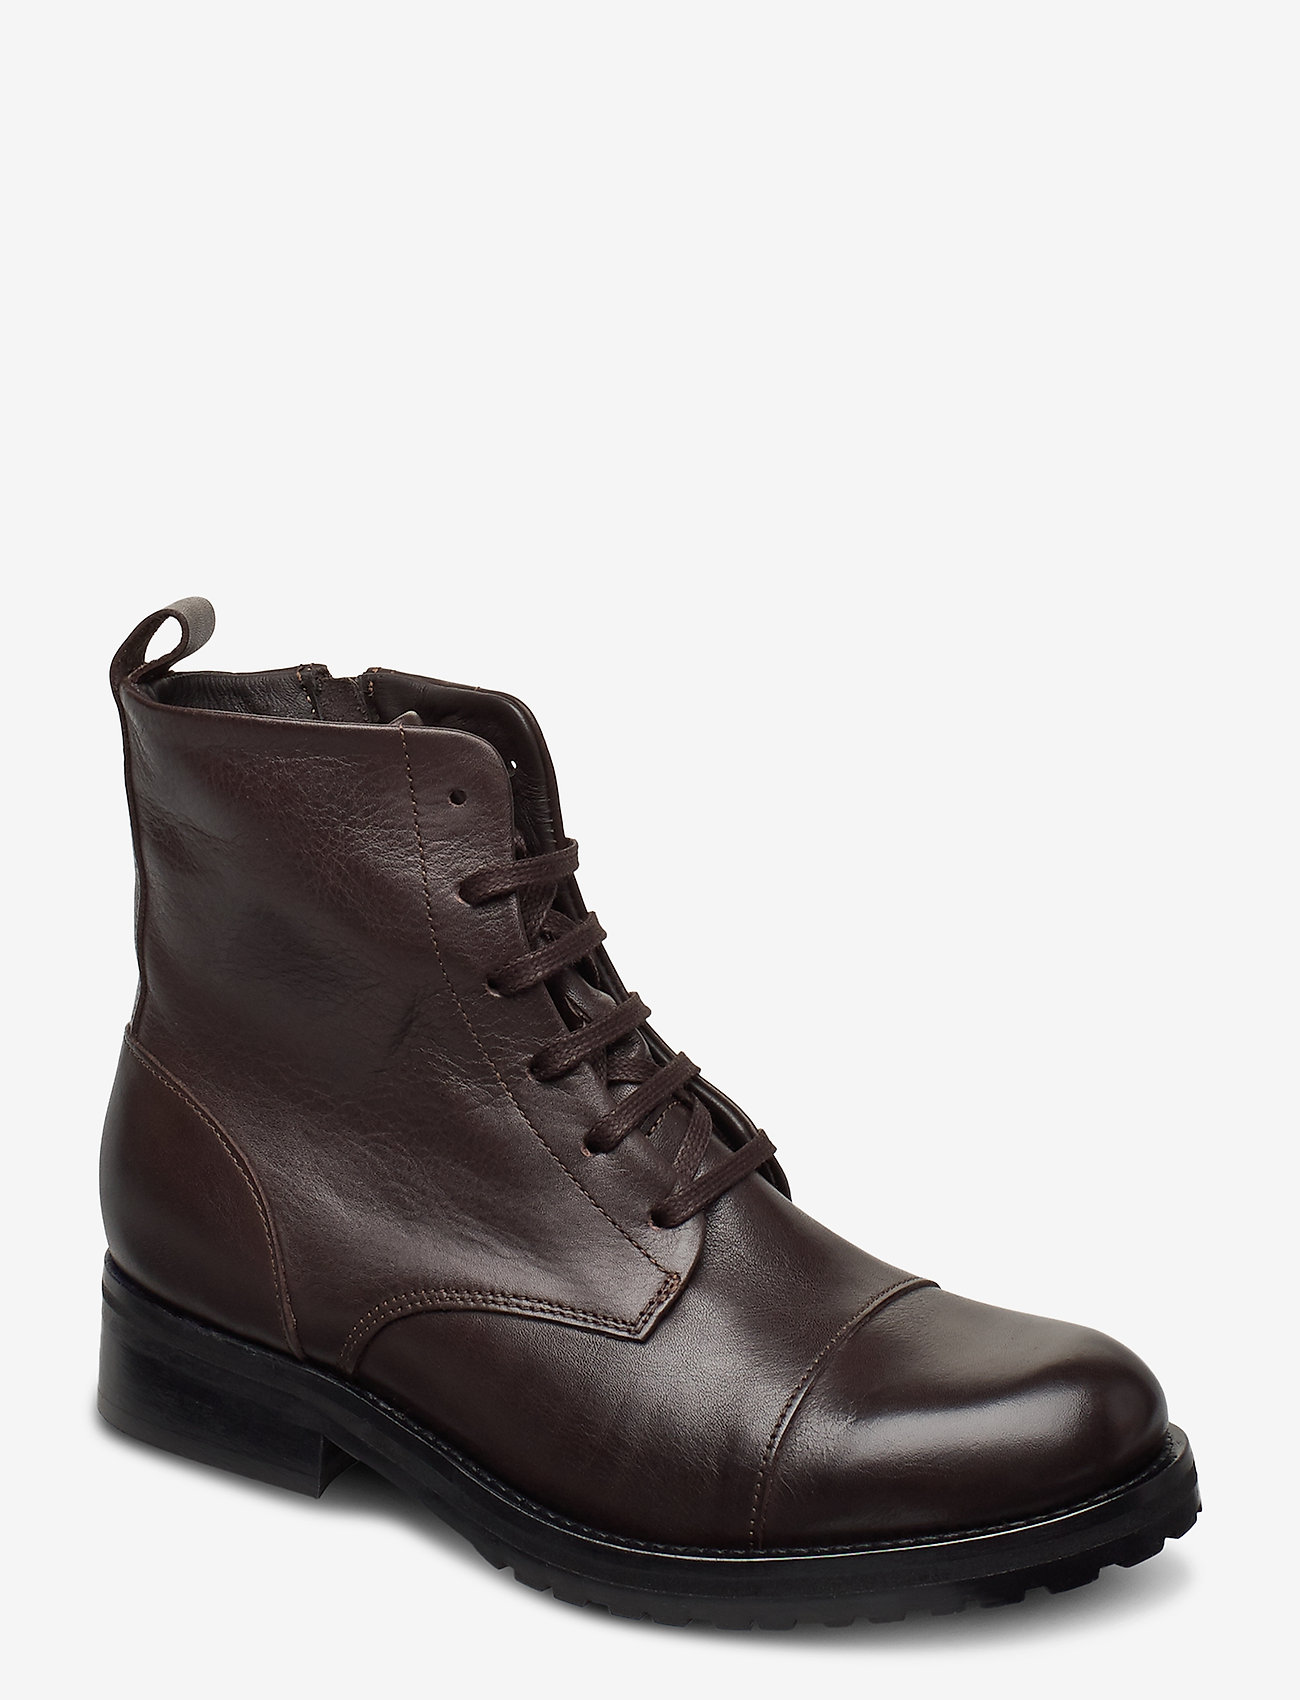 Royal RepubliQ - Ave Lace Up Boot - Black - niski obcas - brown - 0